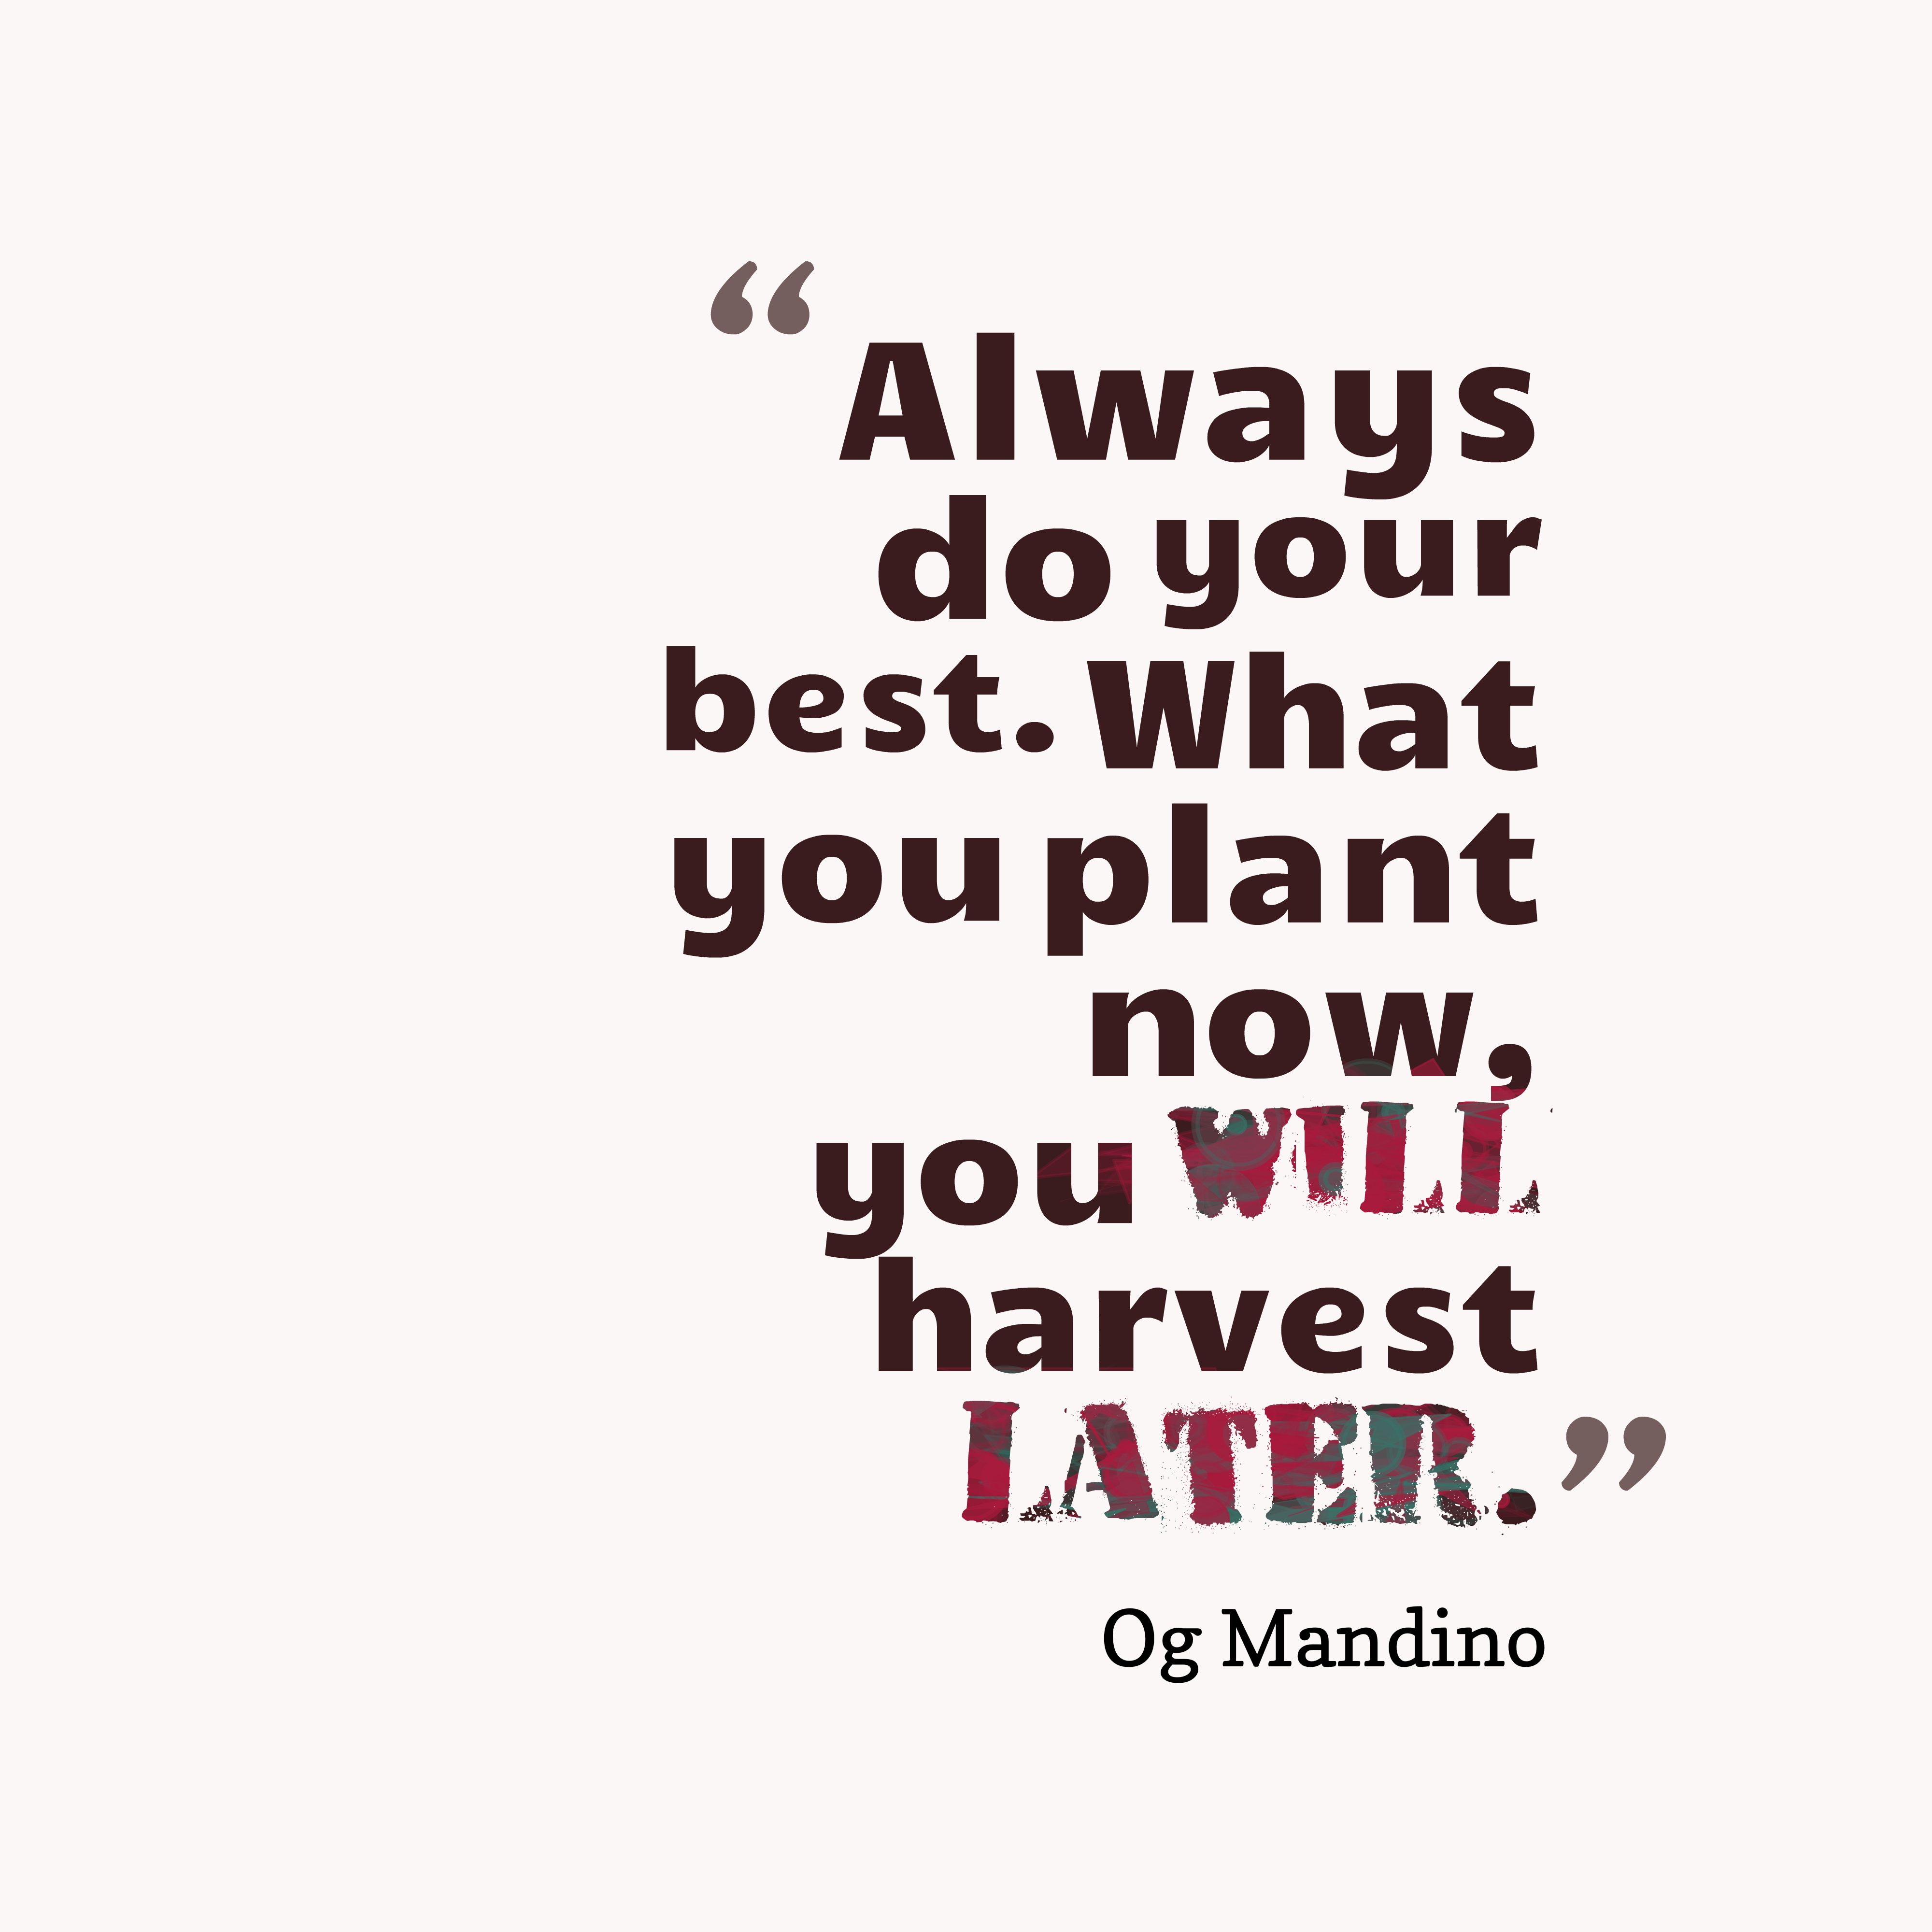 Og Mandino Quote About Plant